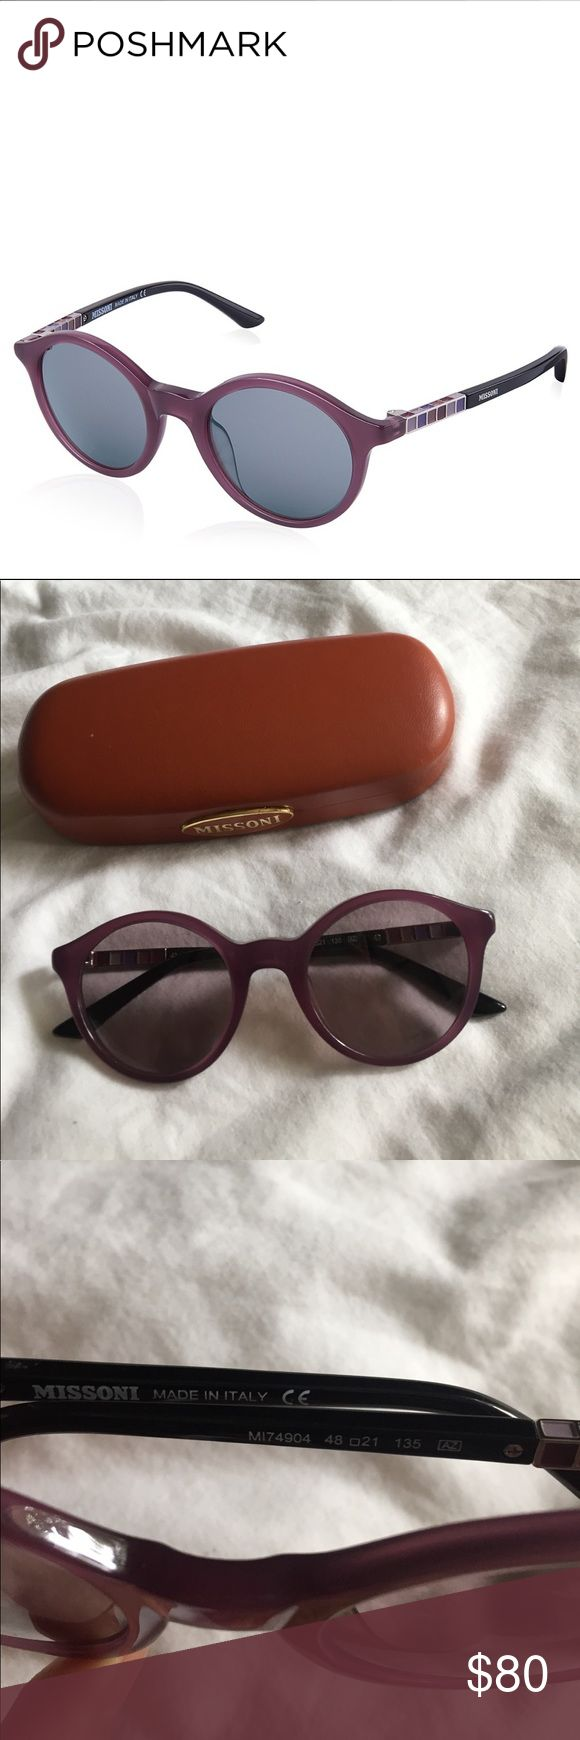 Missoni purple sunglasses 100% authentic missoni sunglasses. Will come with case as pictures and cleaning cloth. Used once or twice , great condition Missoni Accessories Sunglasses